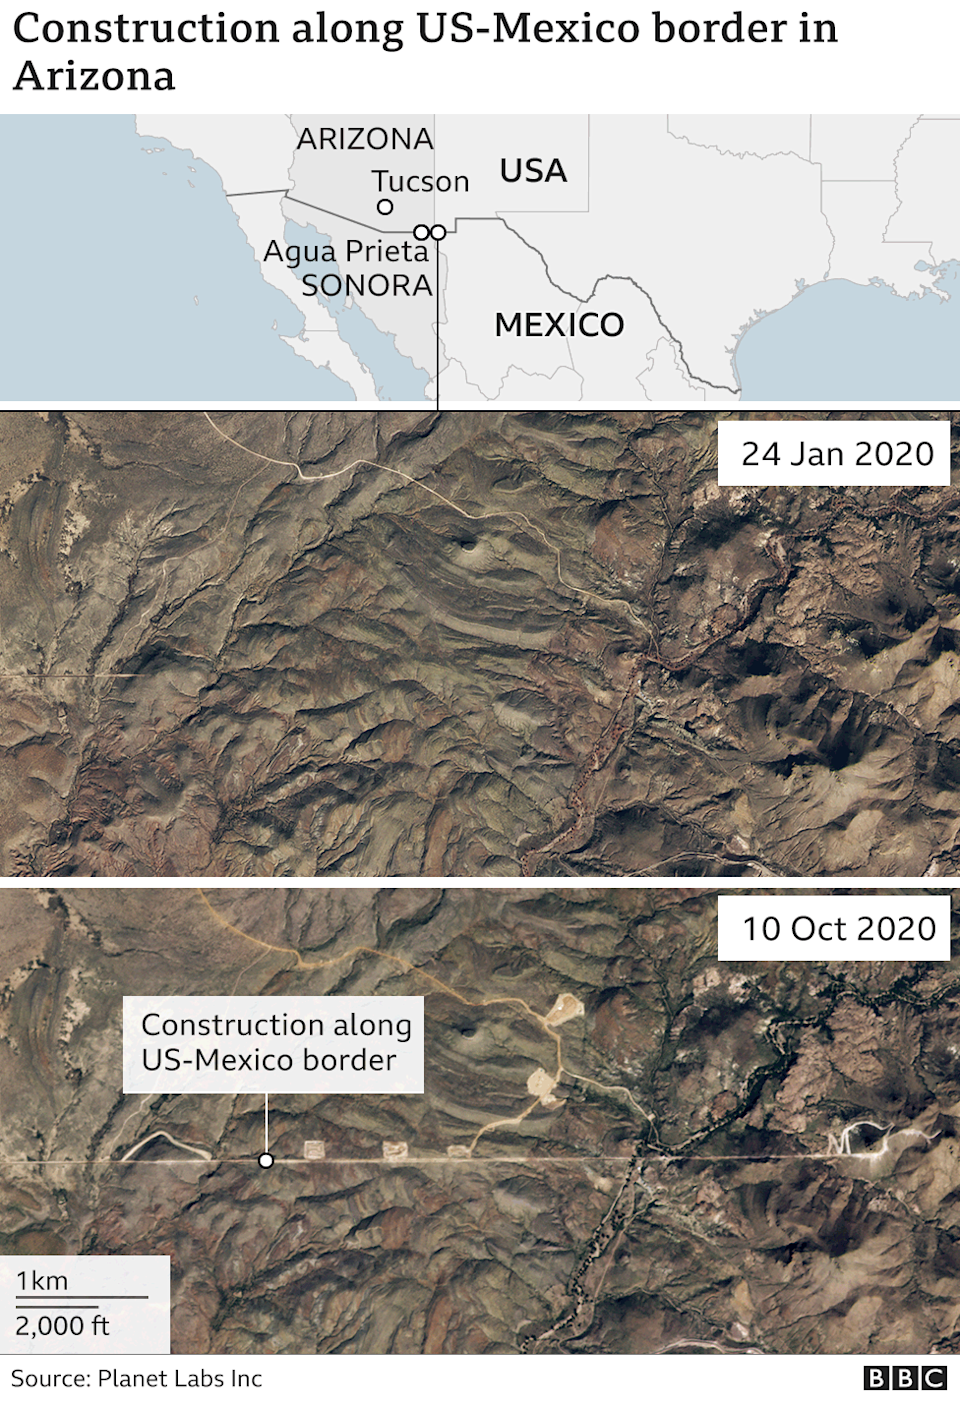 Satellite images show recent construction work along the border